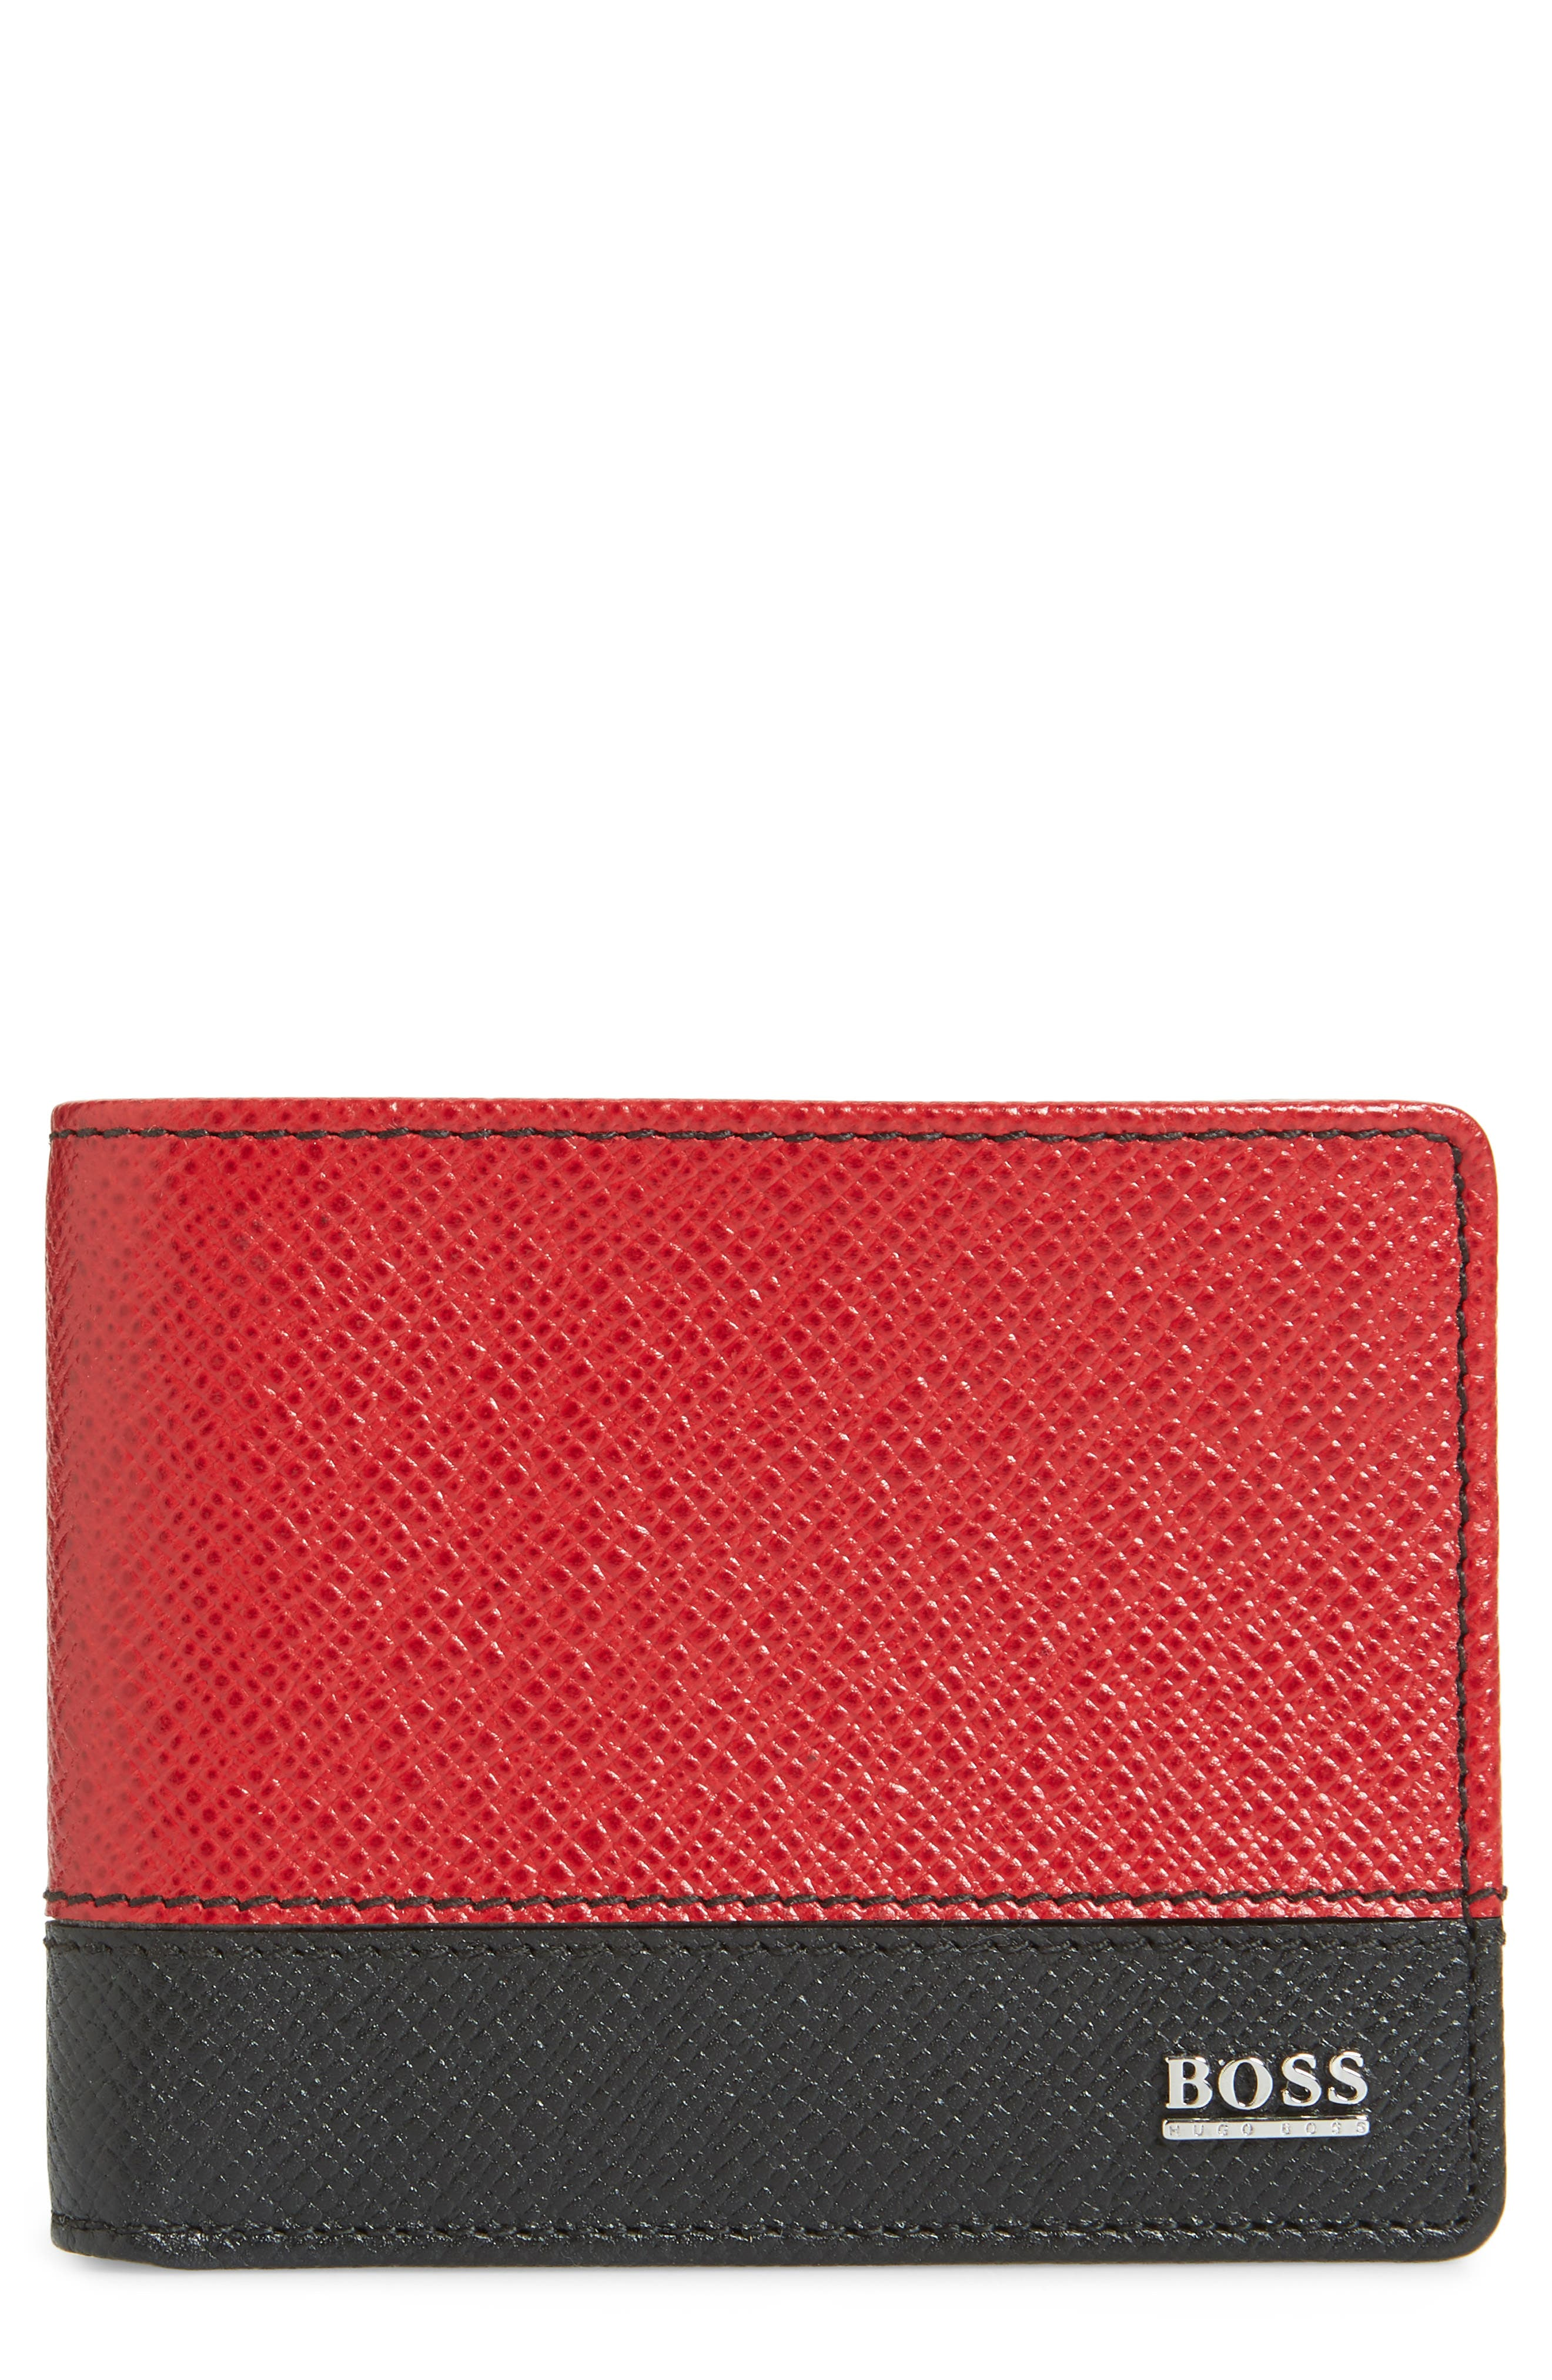 Embossed Leather Wallet,                             Main thumbnail 1, color,                             DARK RED